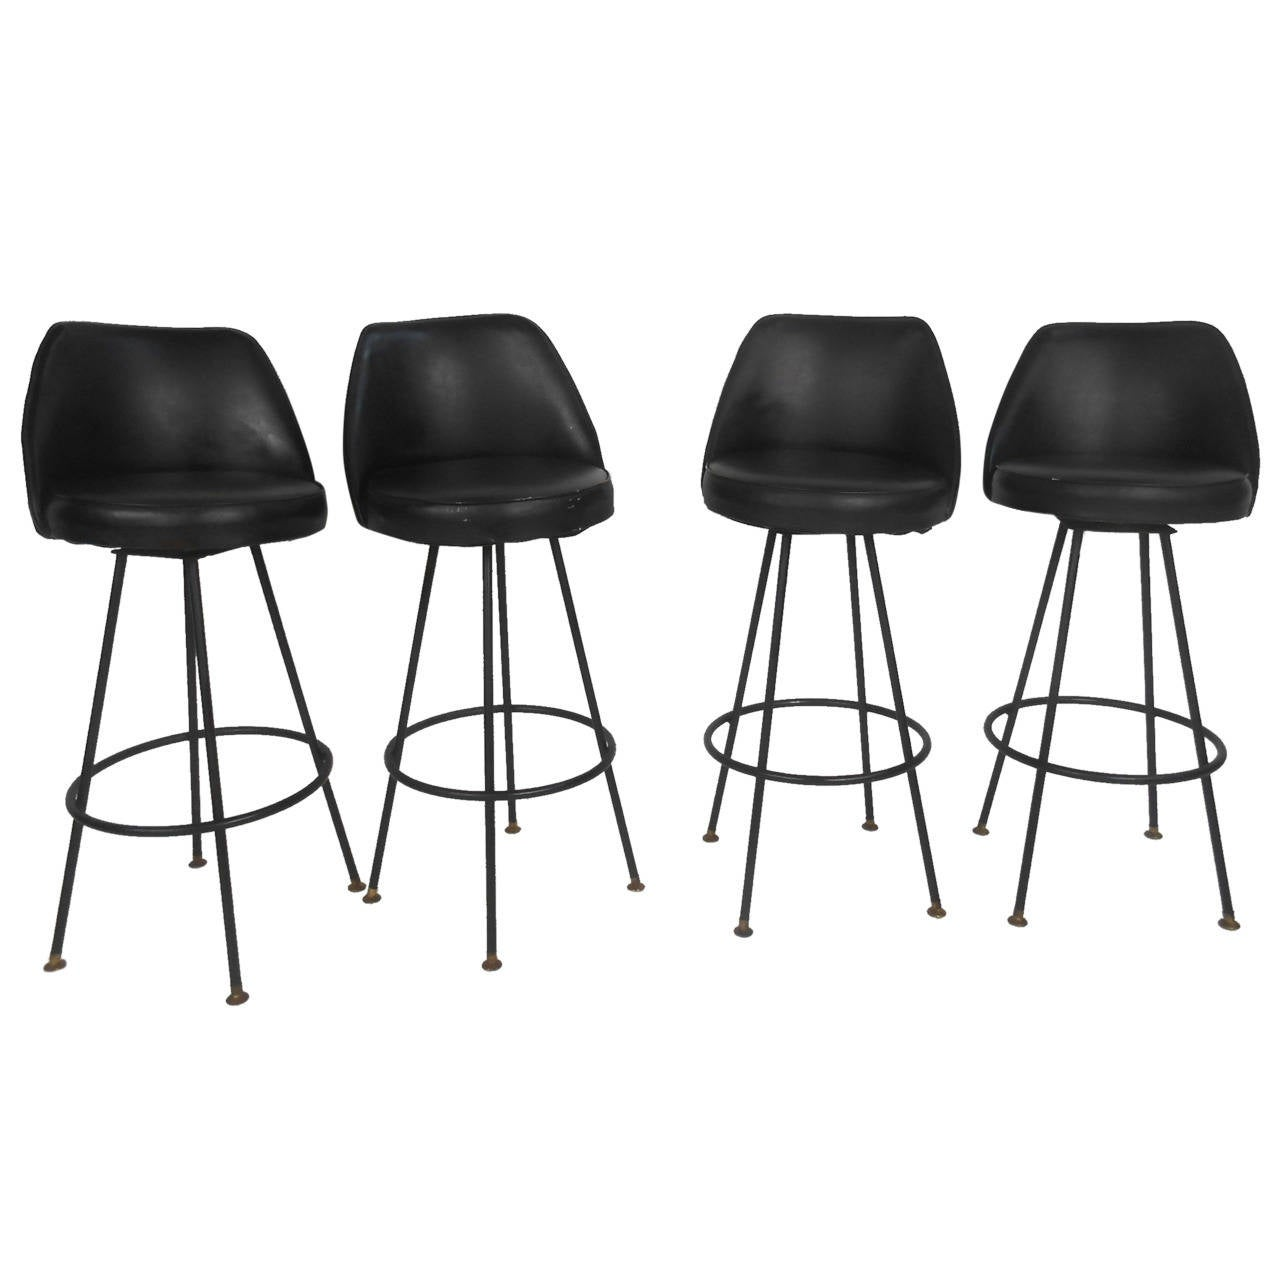 modern bar chairs best lumbar support office chair four mid century stools by admiral chrome